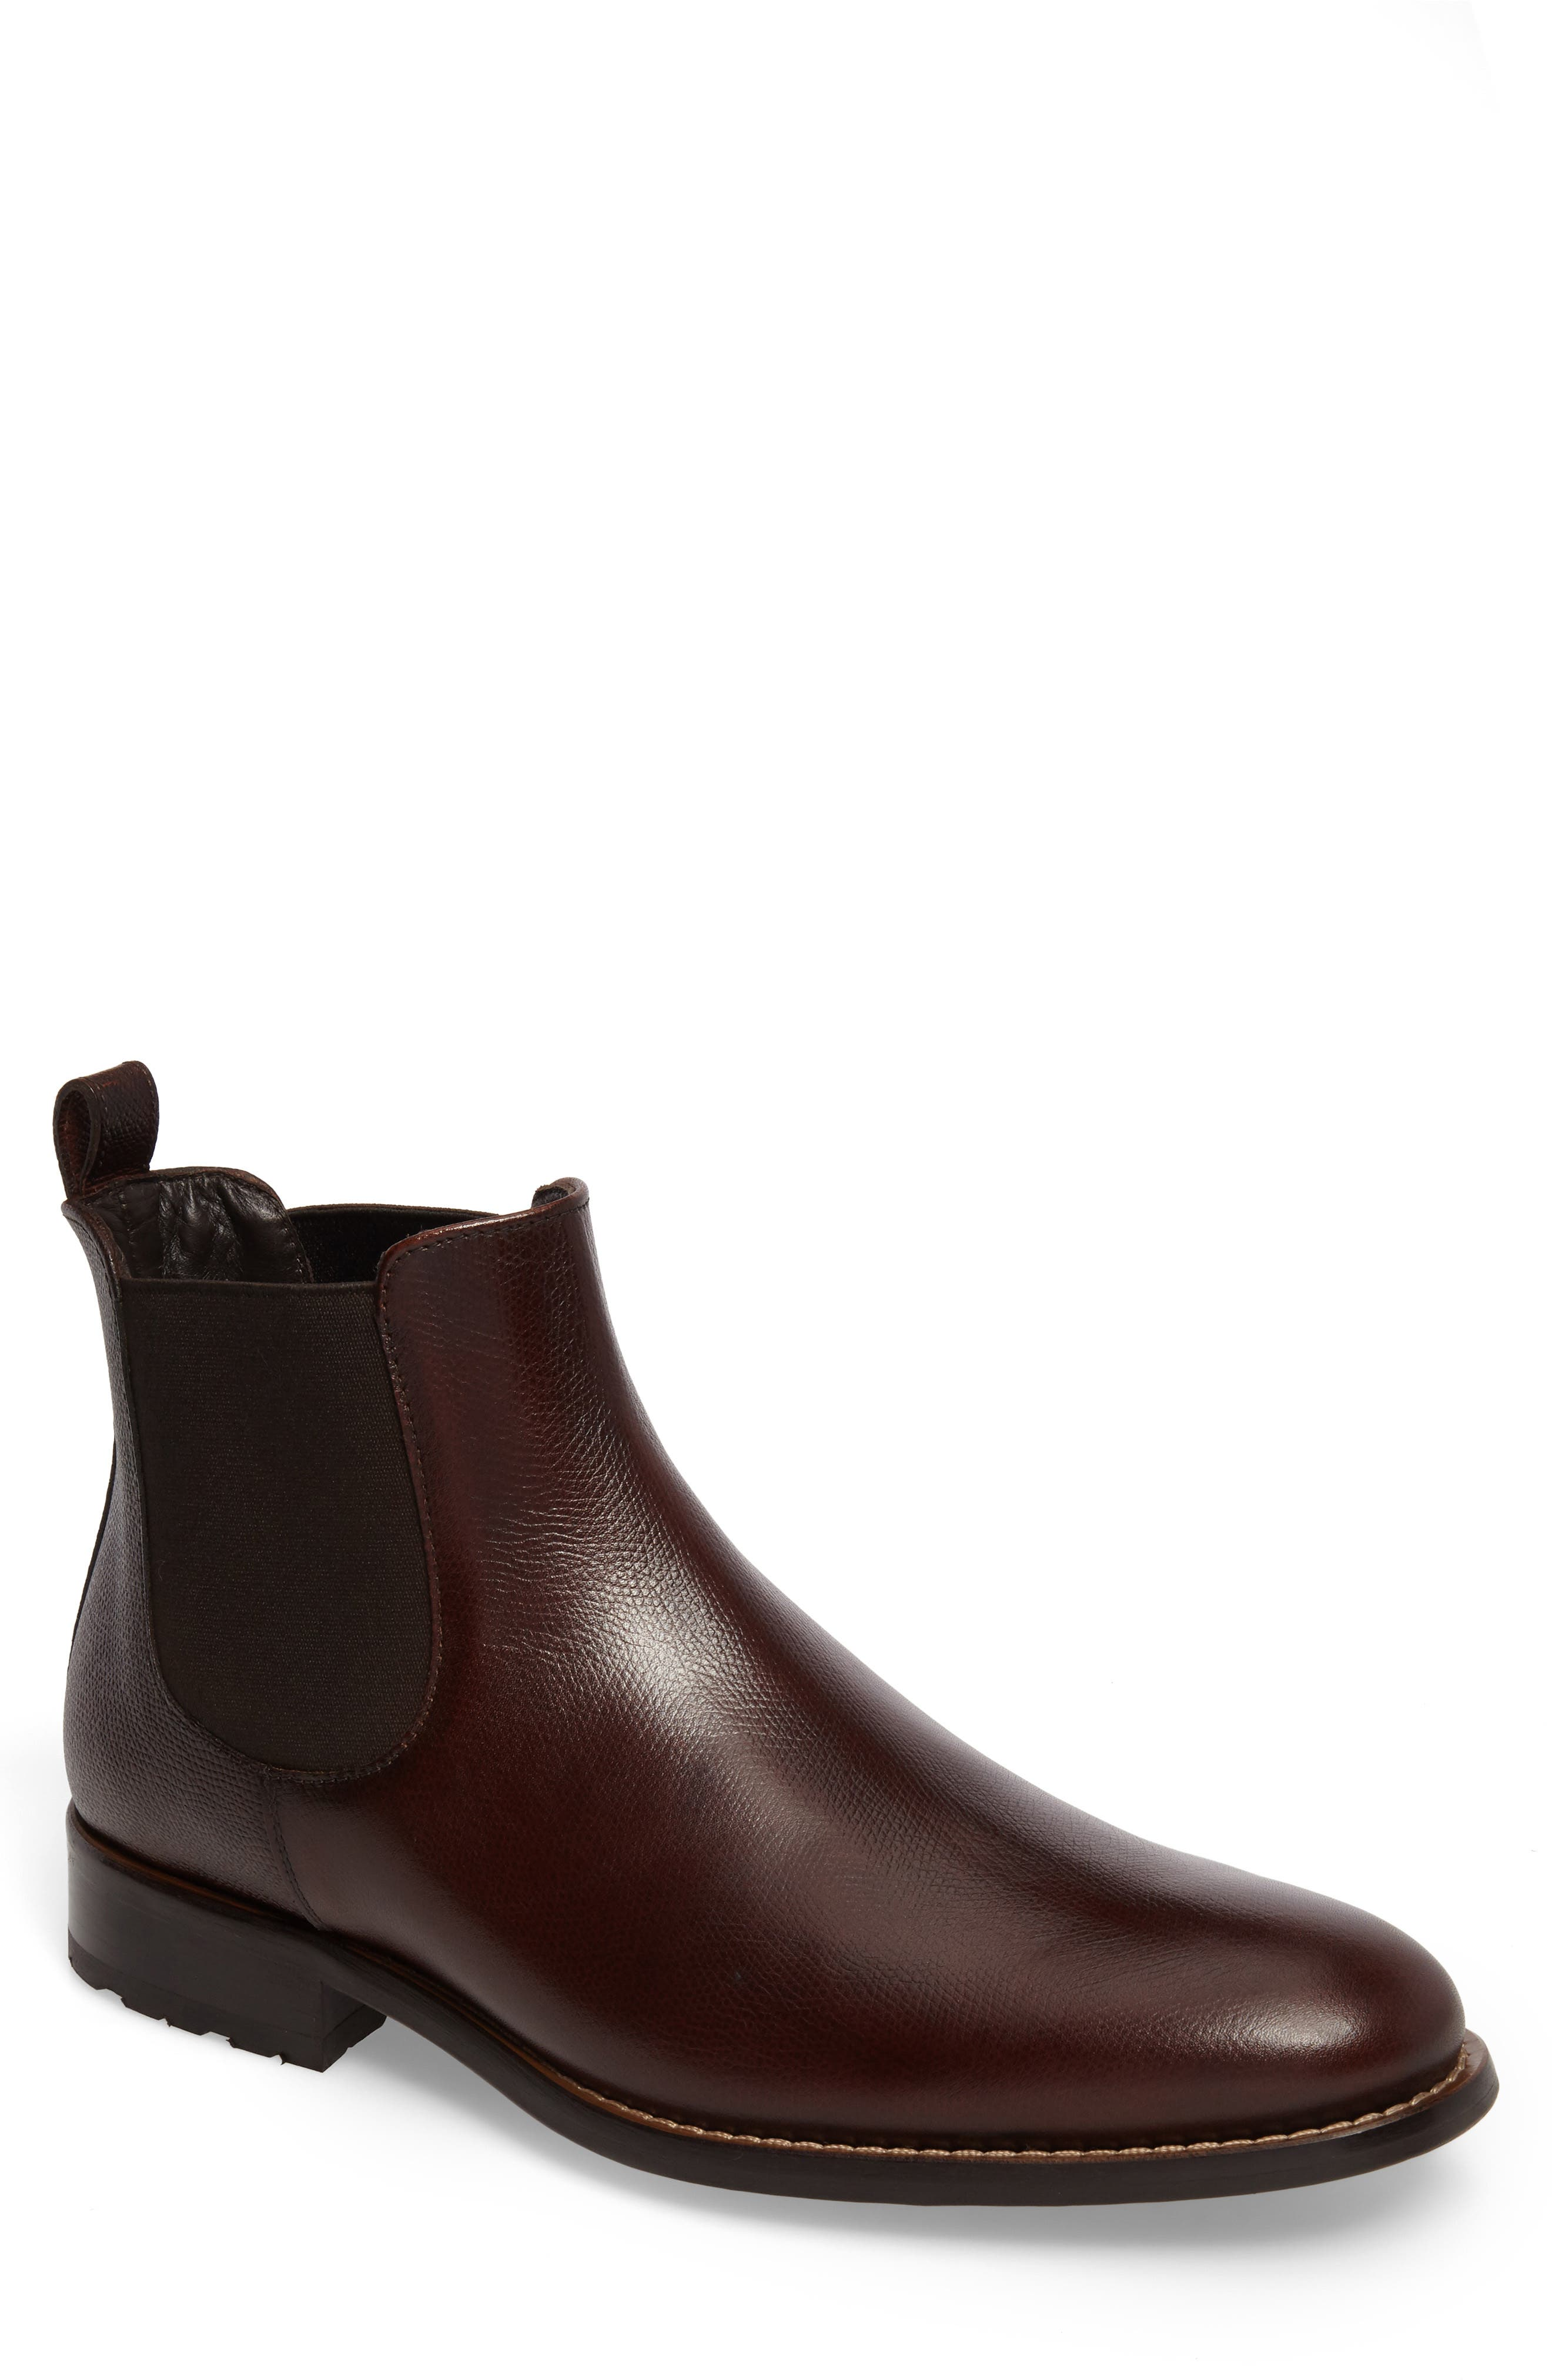 Alternate Image 1 Selected - To Boot New York Savoy Chelsea Boot (Men)